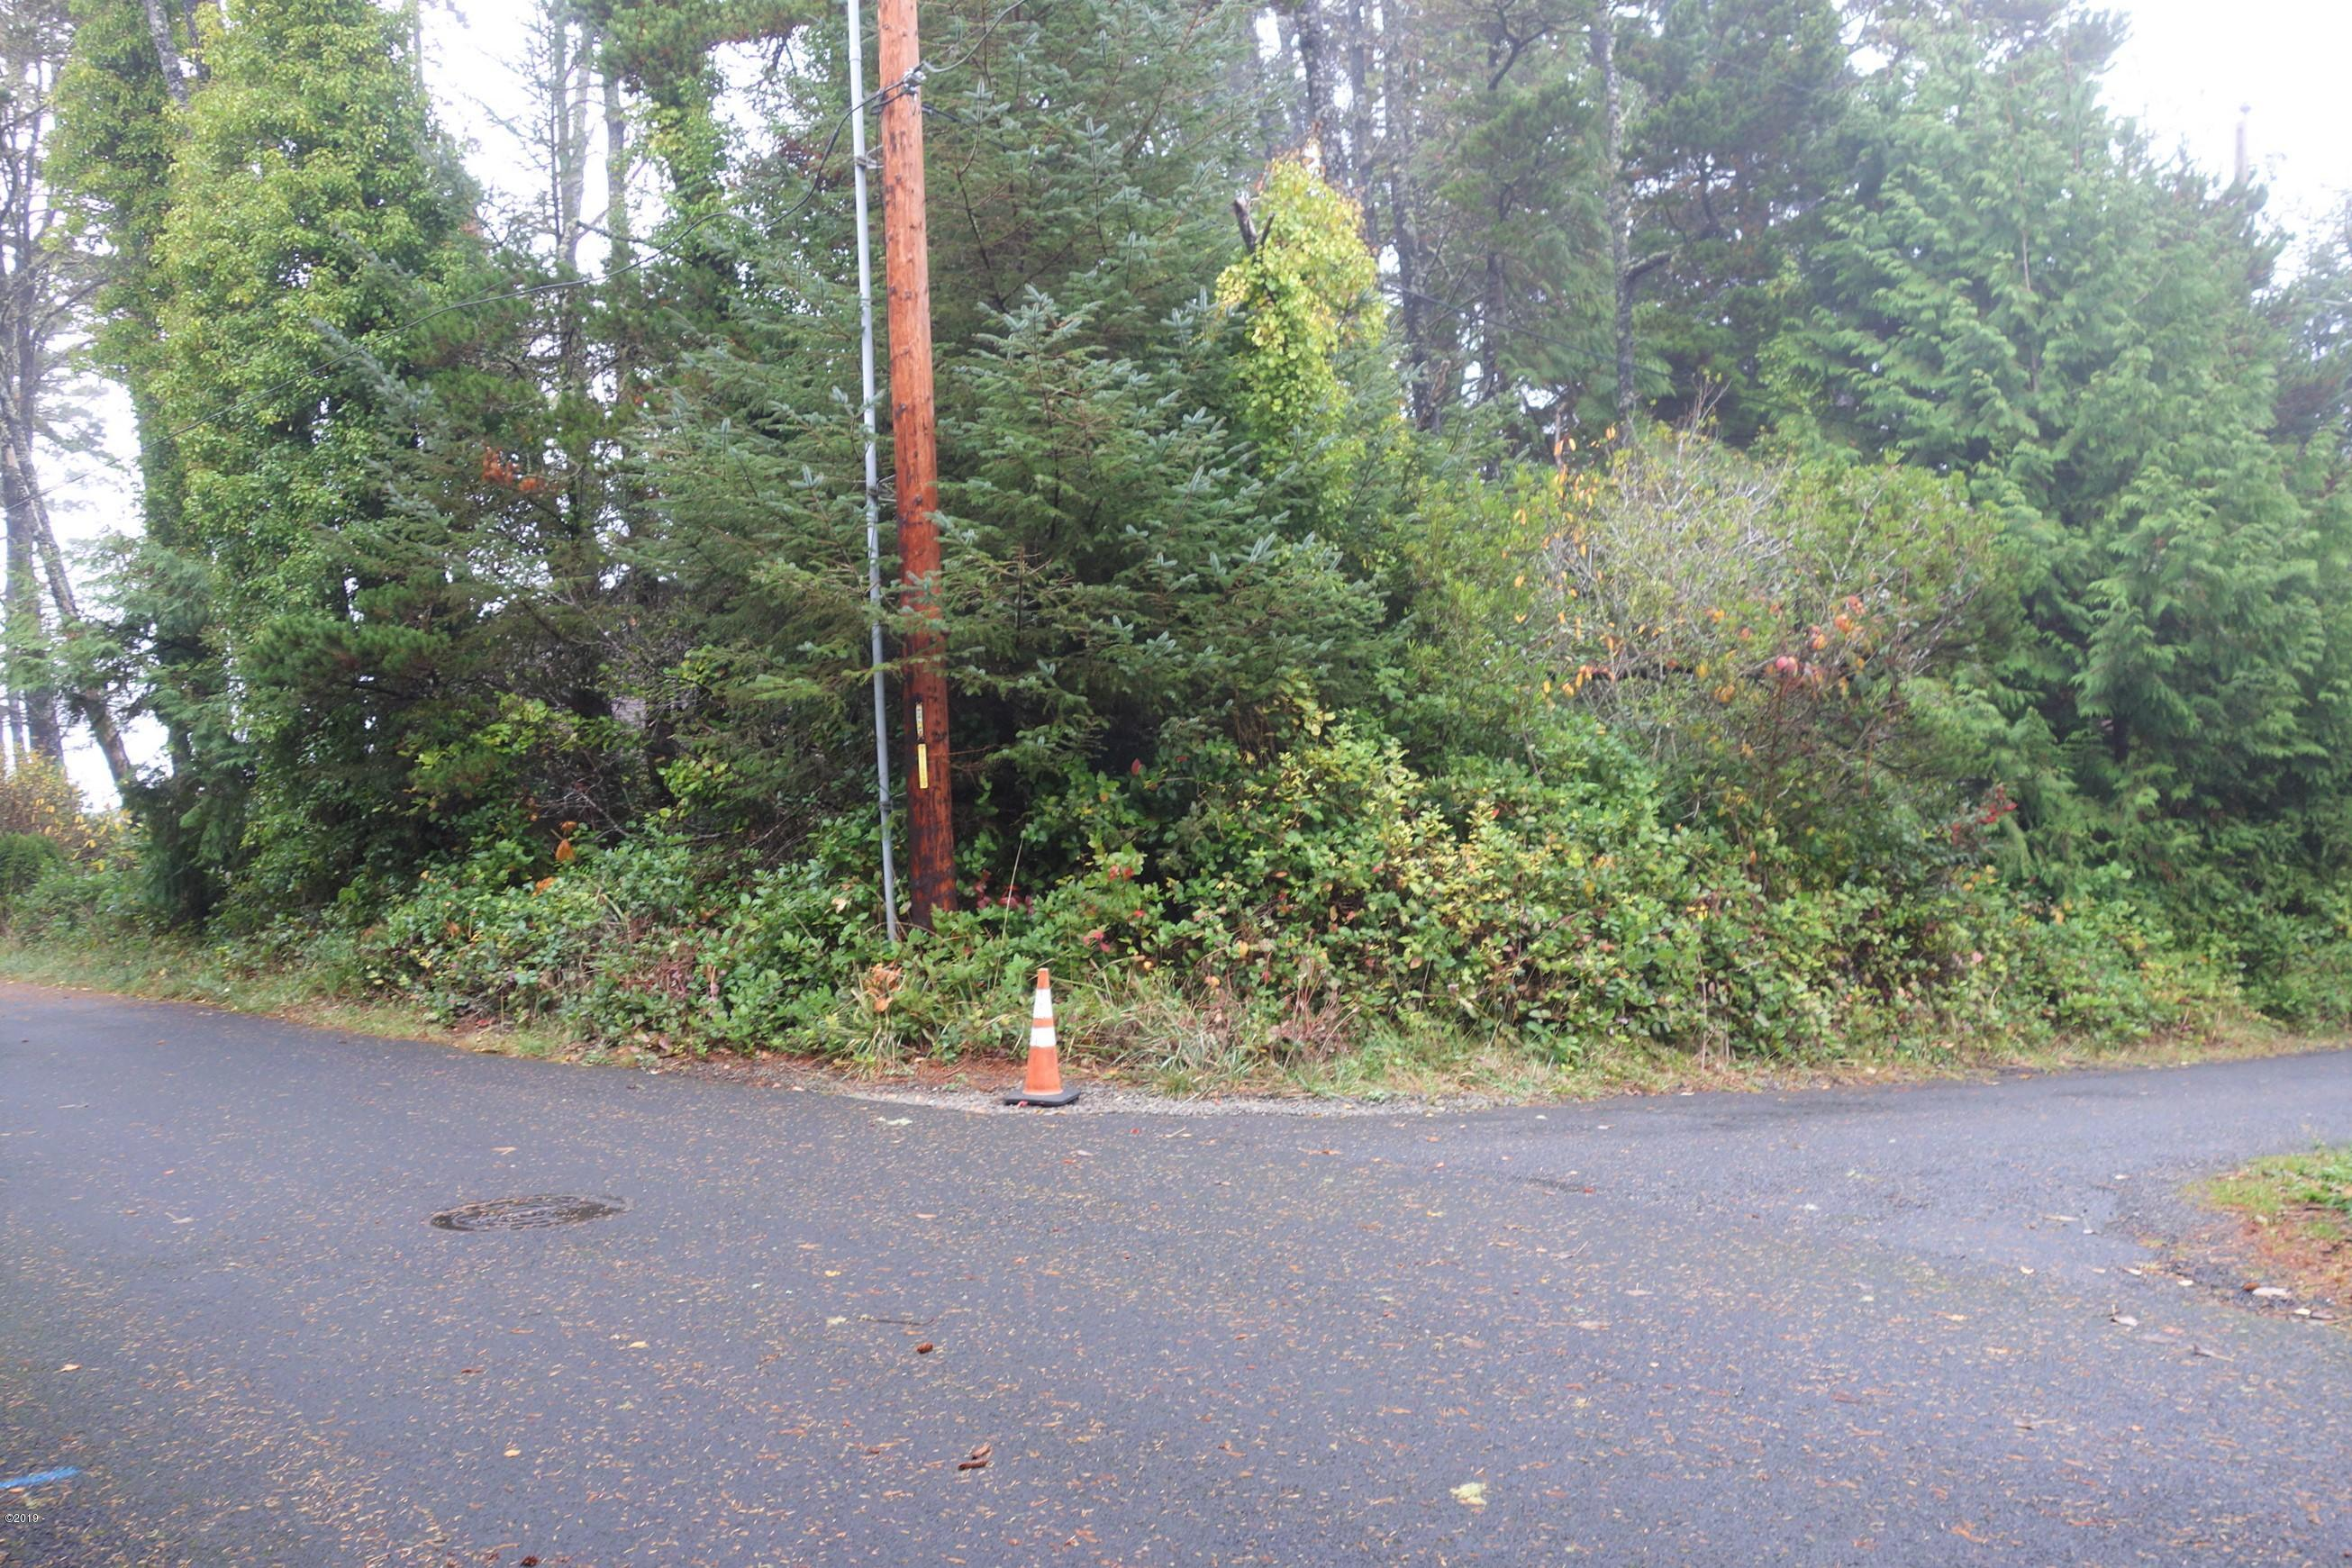 LOT 1 Manzanita Ave, Depoe Bay, OR 97341 - large Lot in Depoe Bay